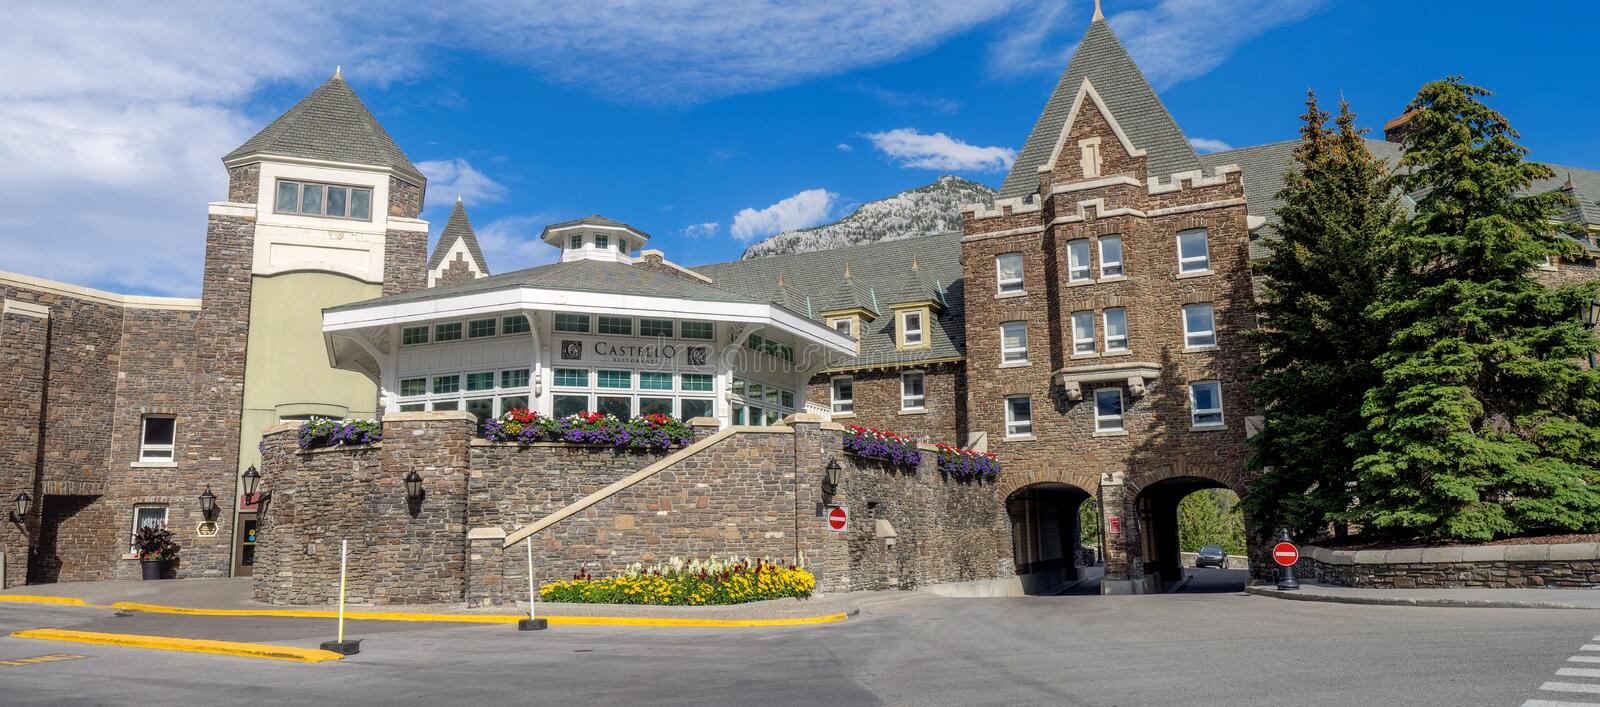 The Banff Springs Hotel. BANFF, CANADA - AUG 9, 2015: The Banff Springs Hotel on August 9, 2015 in the Canadian Rockies. The Banff Springs Hotel was built during royalty free stock images